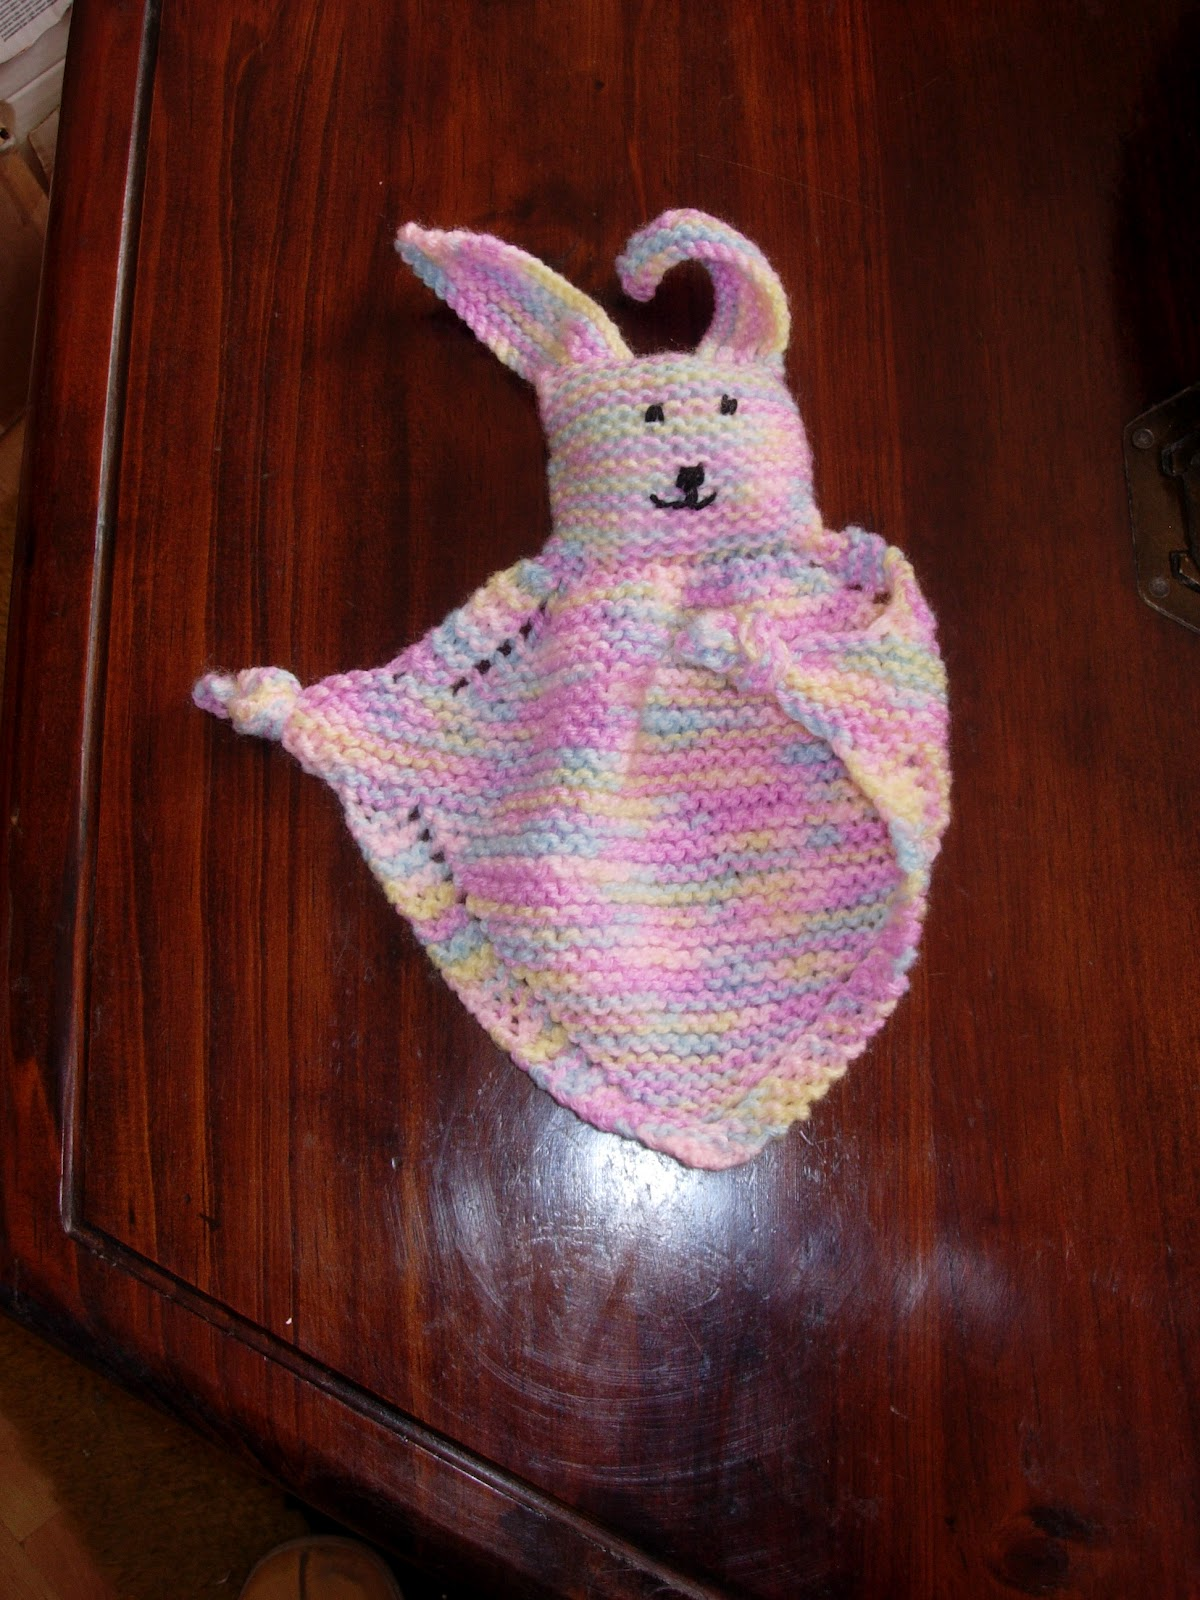 Bunny Blanket Buddy Knit Pattern : Sew many yarns: What can you make with wool?